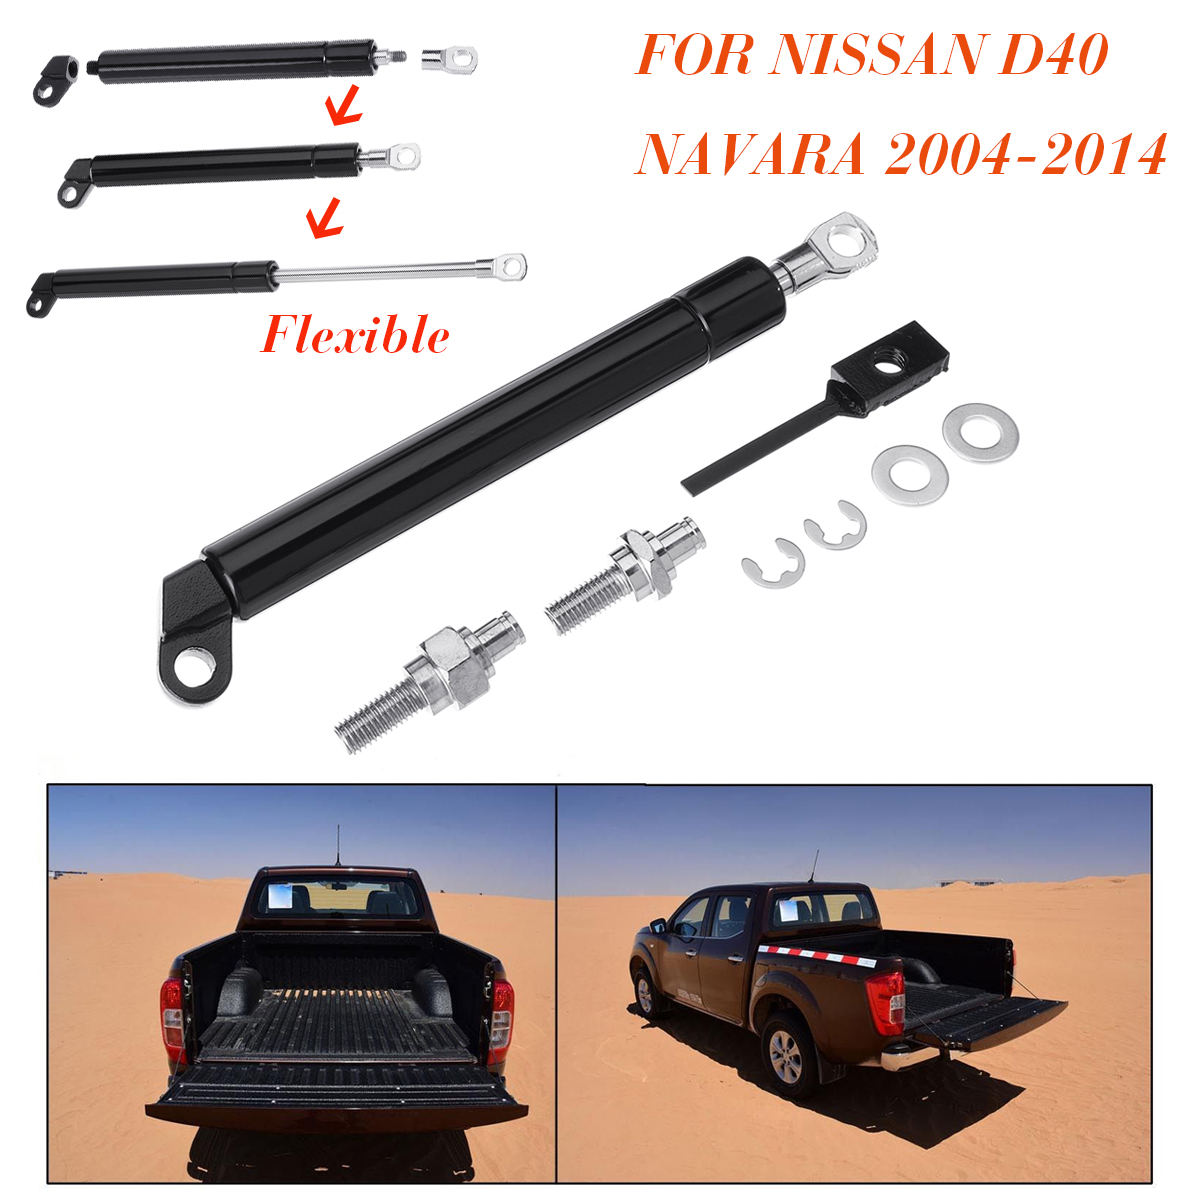 For Nissan D40 Navara 2004-2014 Rear Liftgate Tailgate Slow Down Trunk Gas Shock Strut Lift Supports